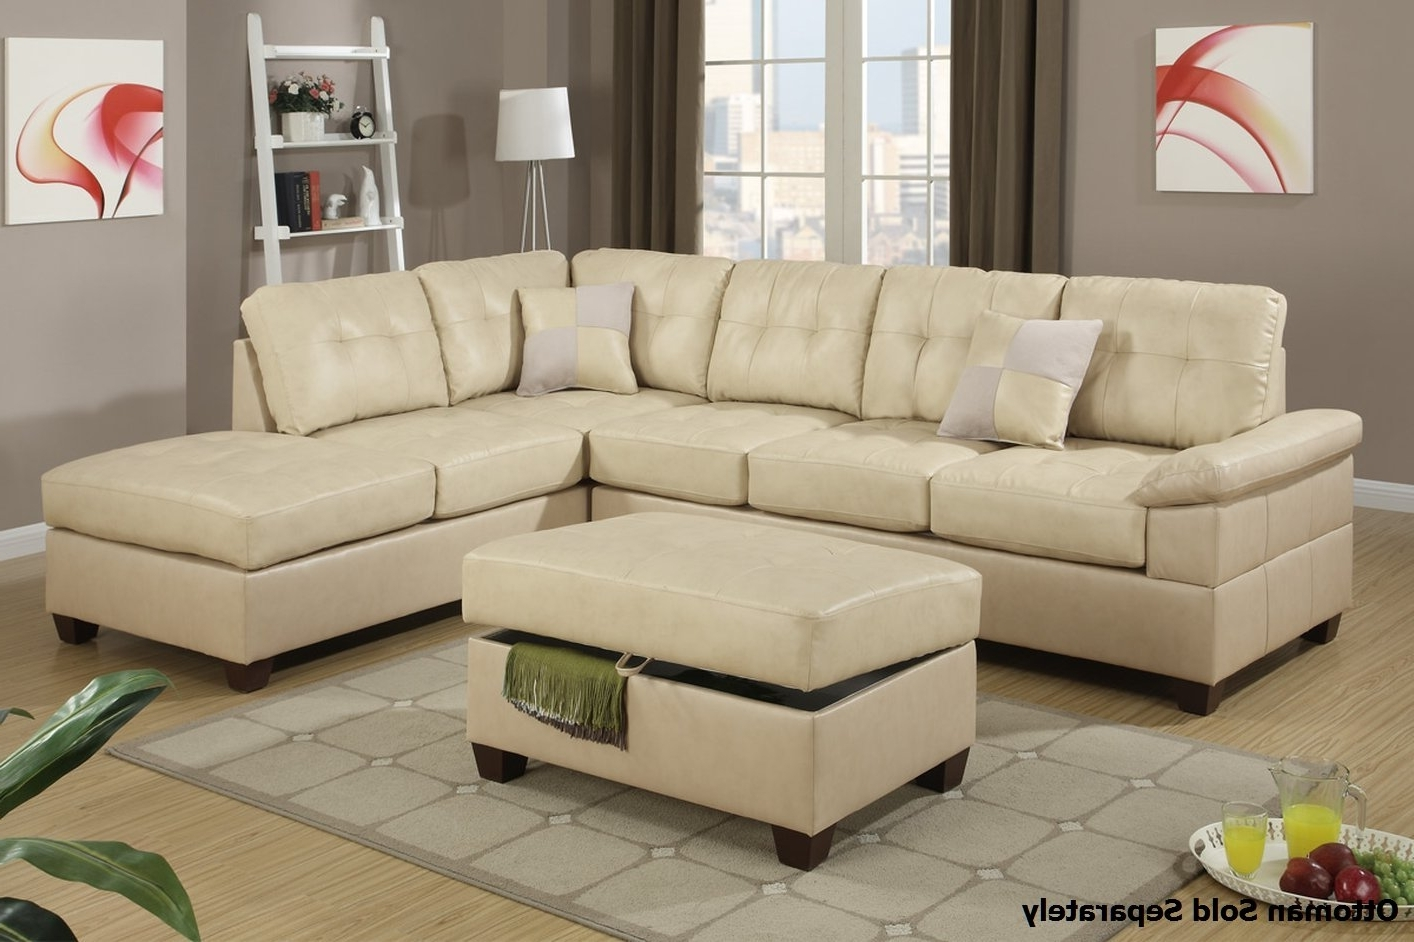 Cream Colored Sofas In Fashionable Sectional Sofa Design Amazing Beige Leather Light